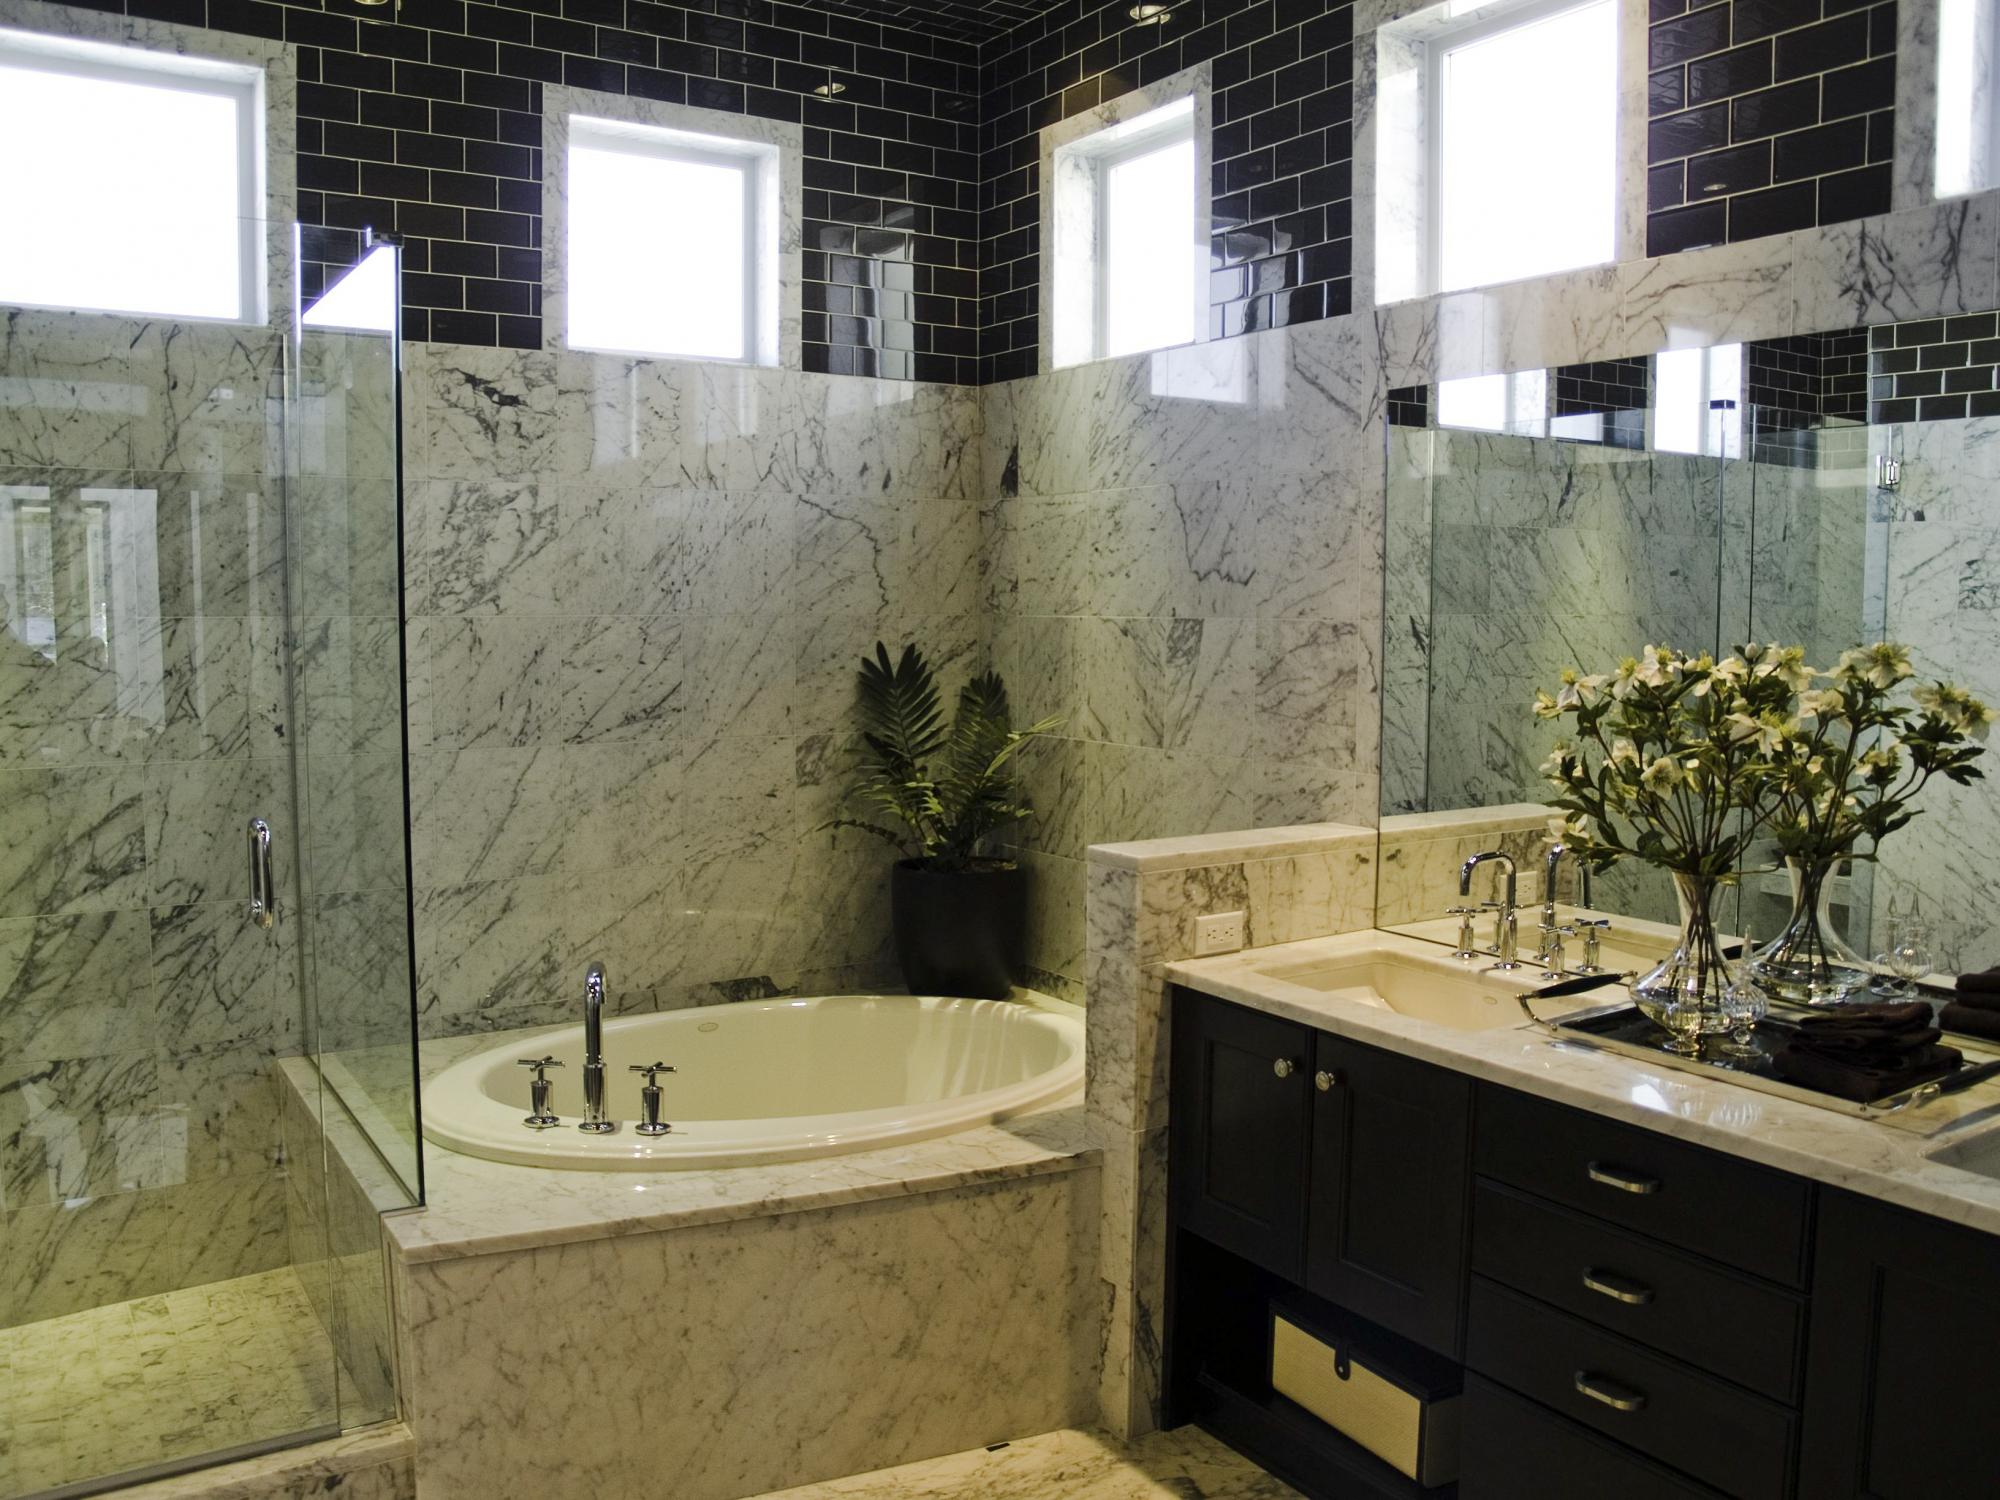 Concord Home Improvements and Remodeling - Bathroom Remodel 1